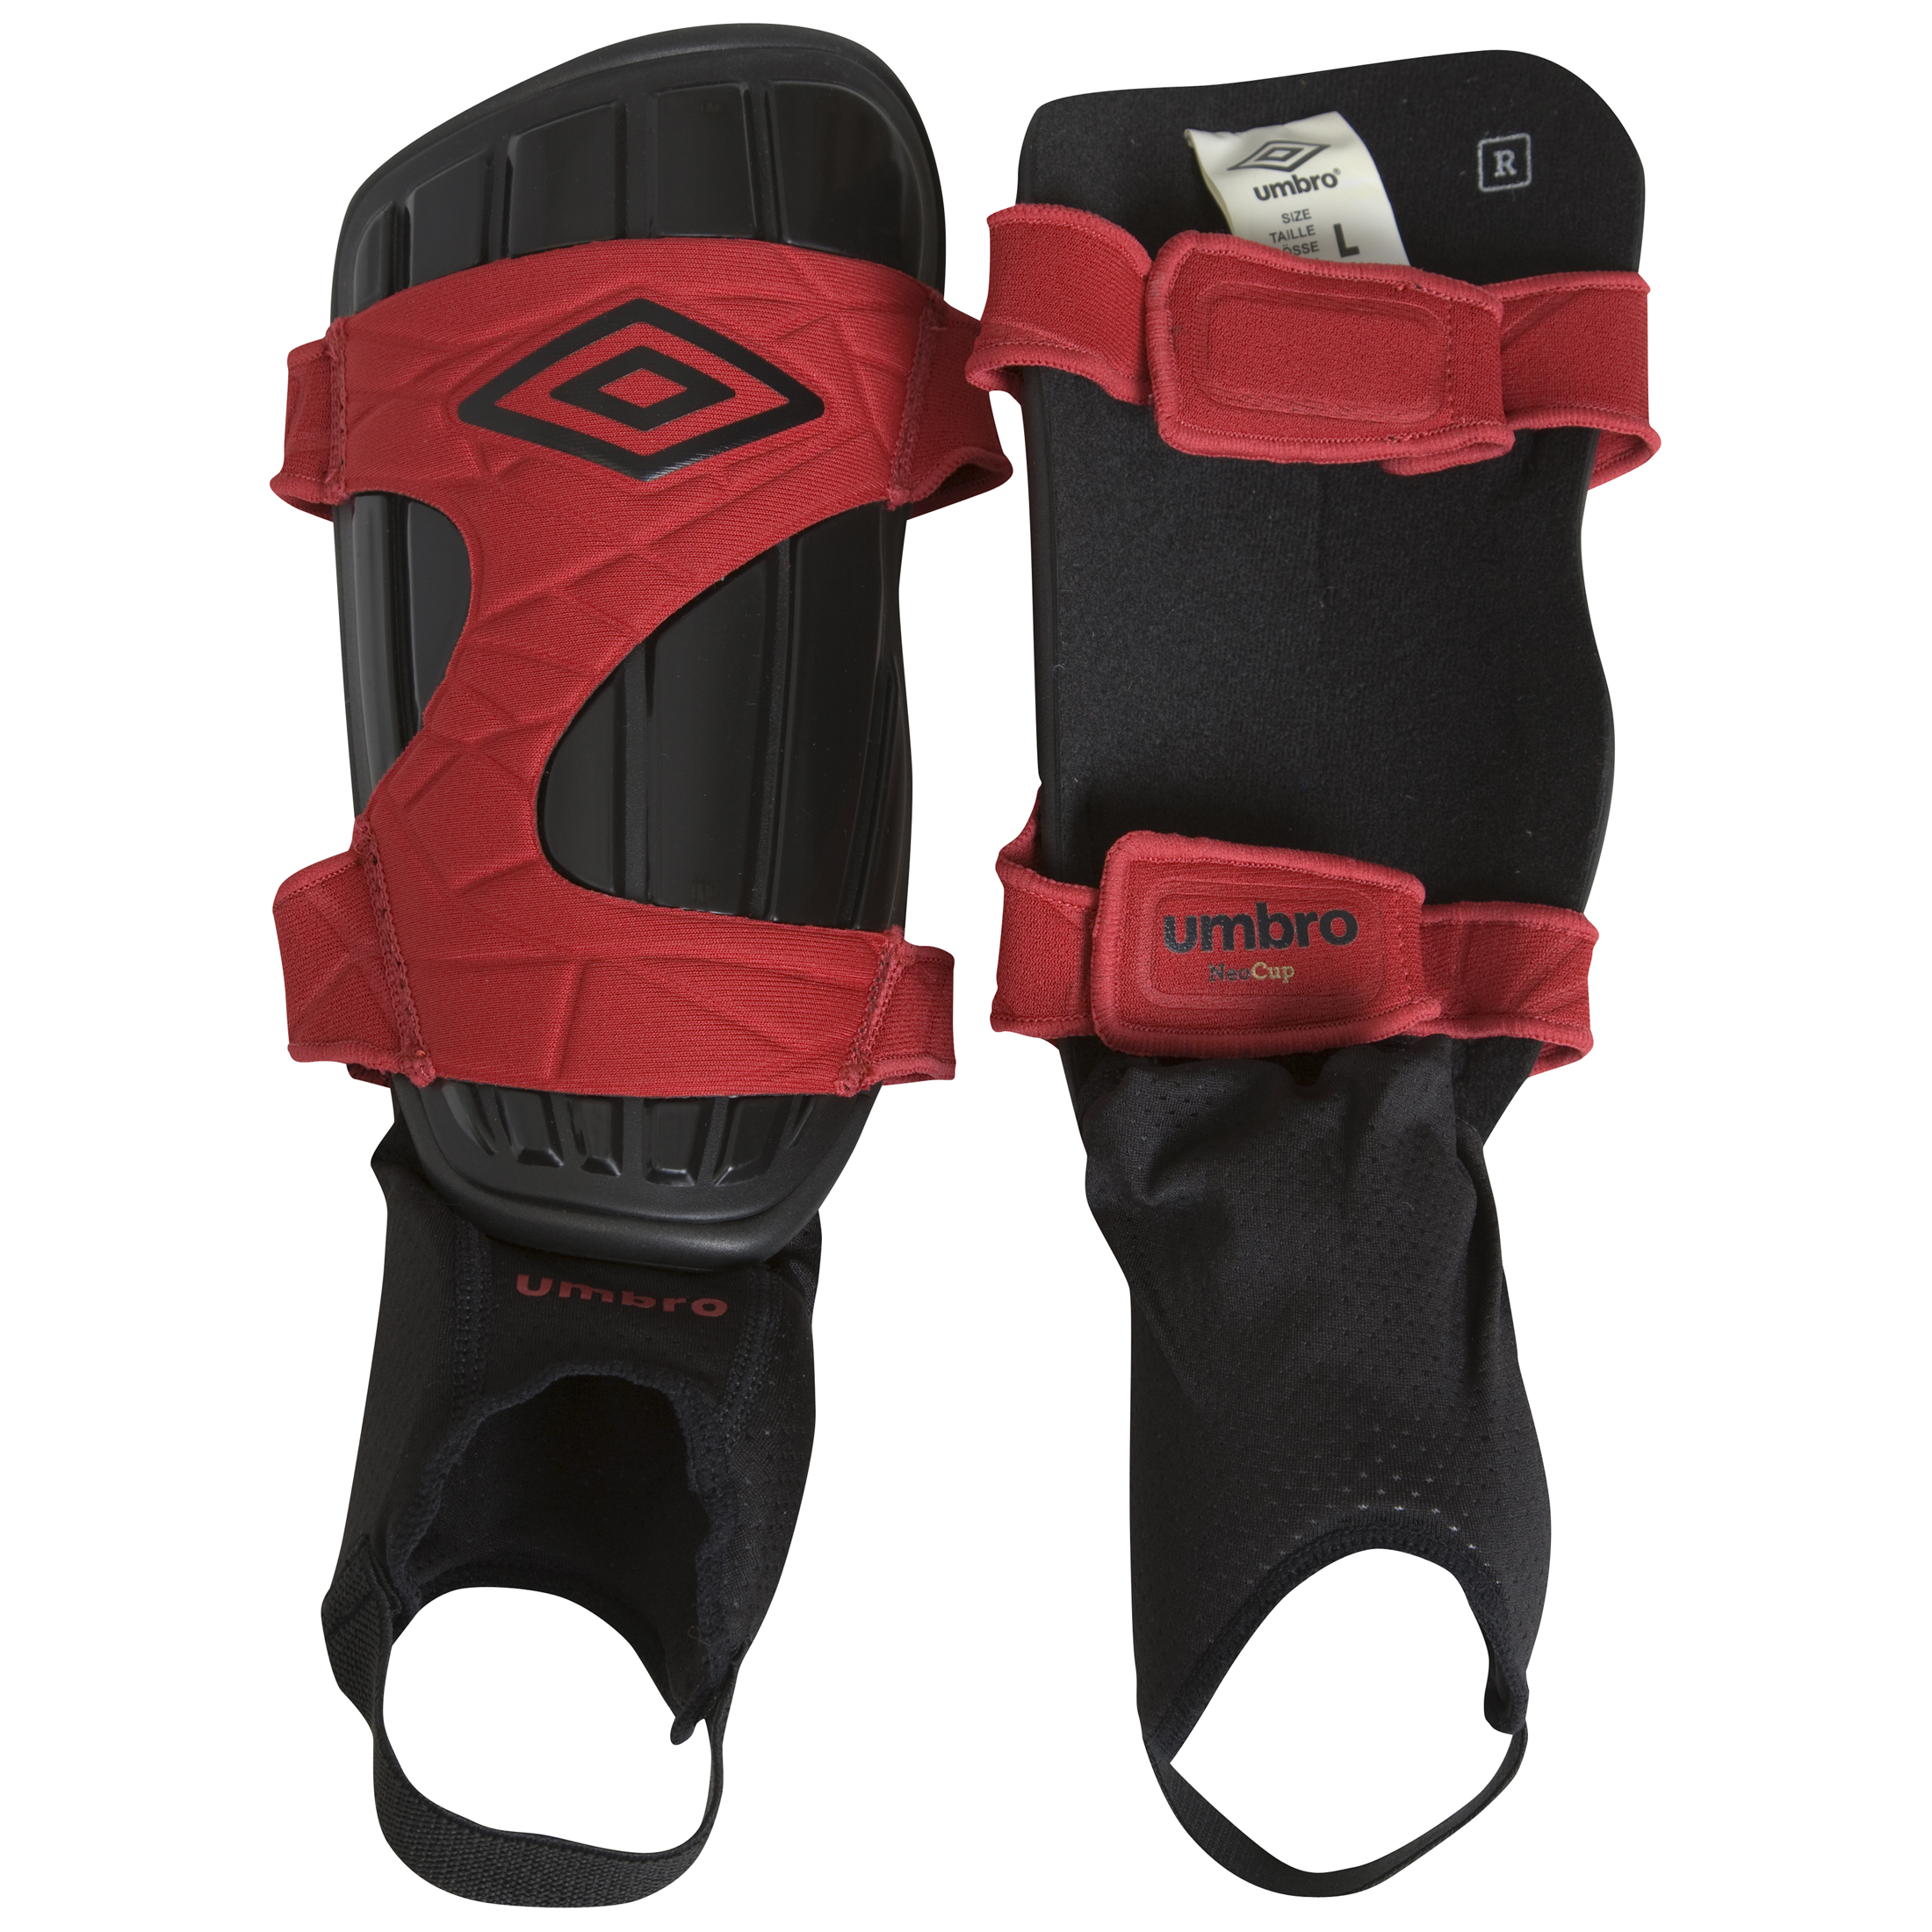 Umbro Cup Shin Pads - Black/Red